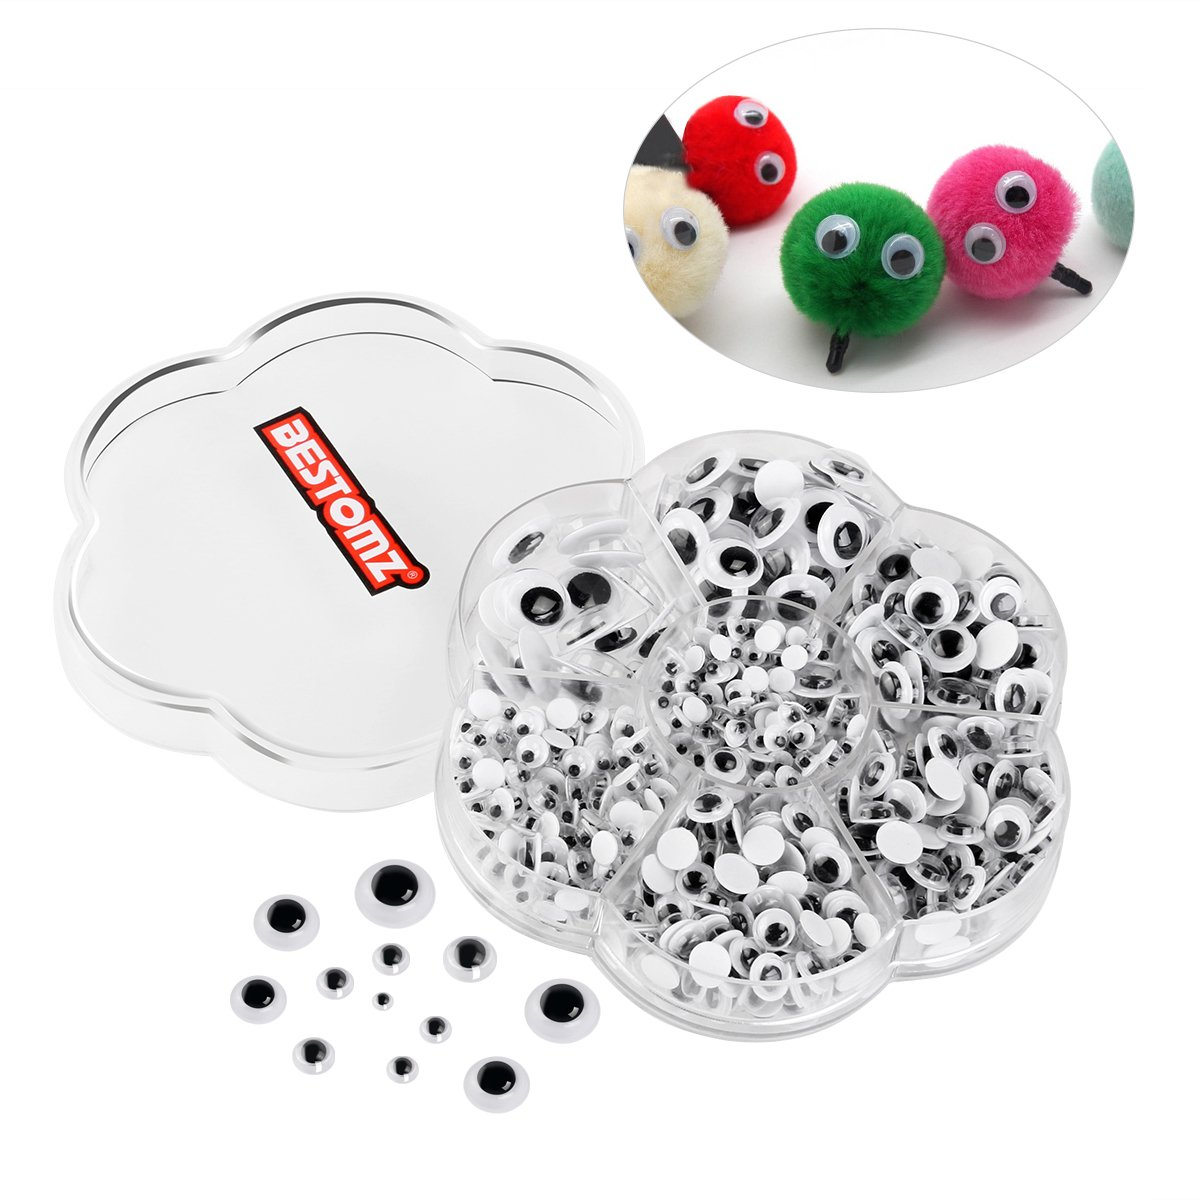 BESTOMZ 700 Pieces Googly Wiggle Eyes with Self-adhesive DIY Scrapbooking Crafts Toy Accessories 4336856525